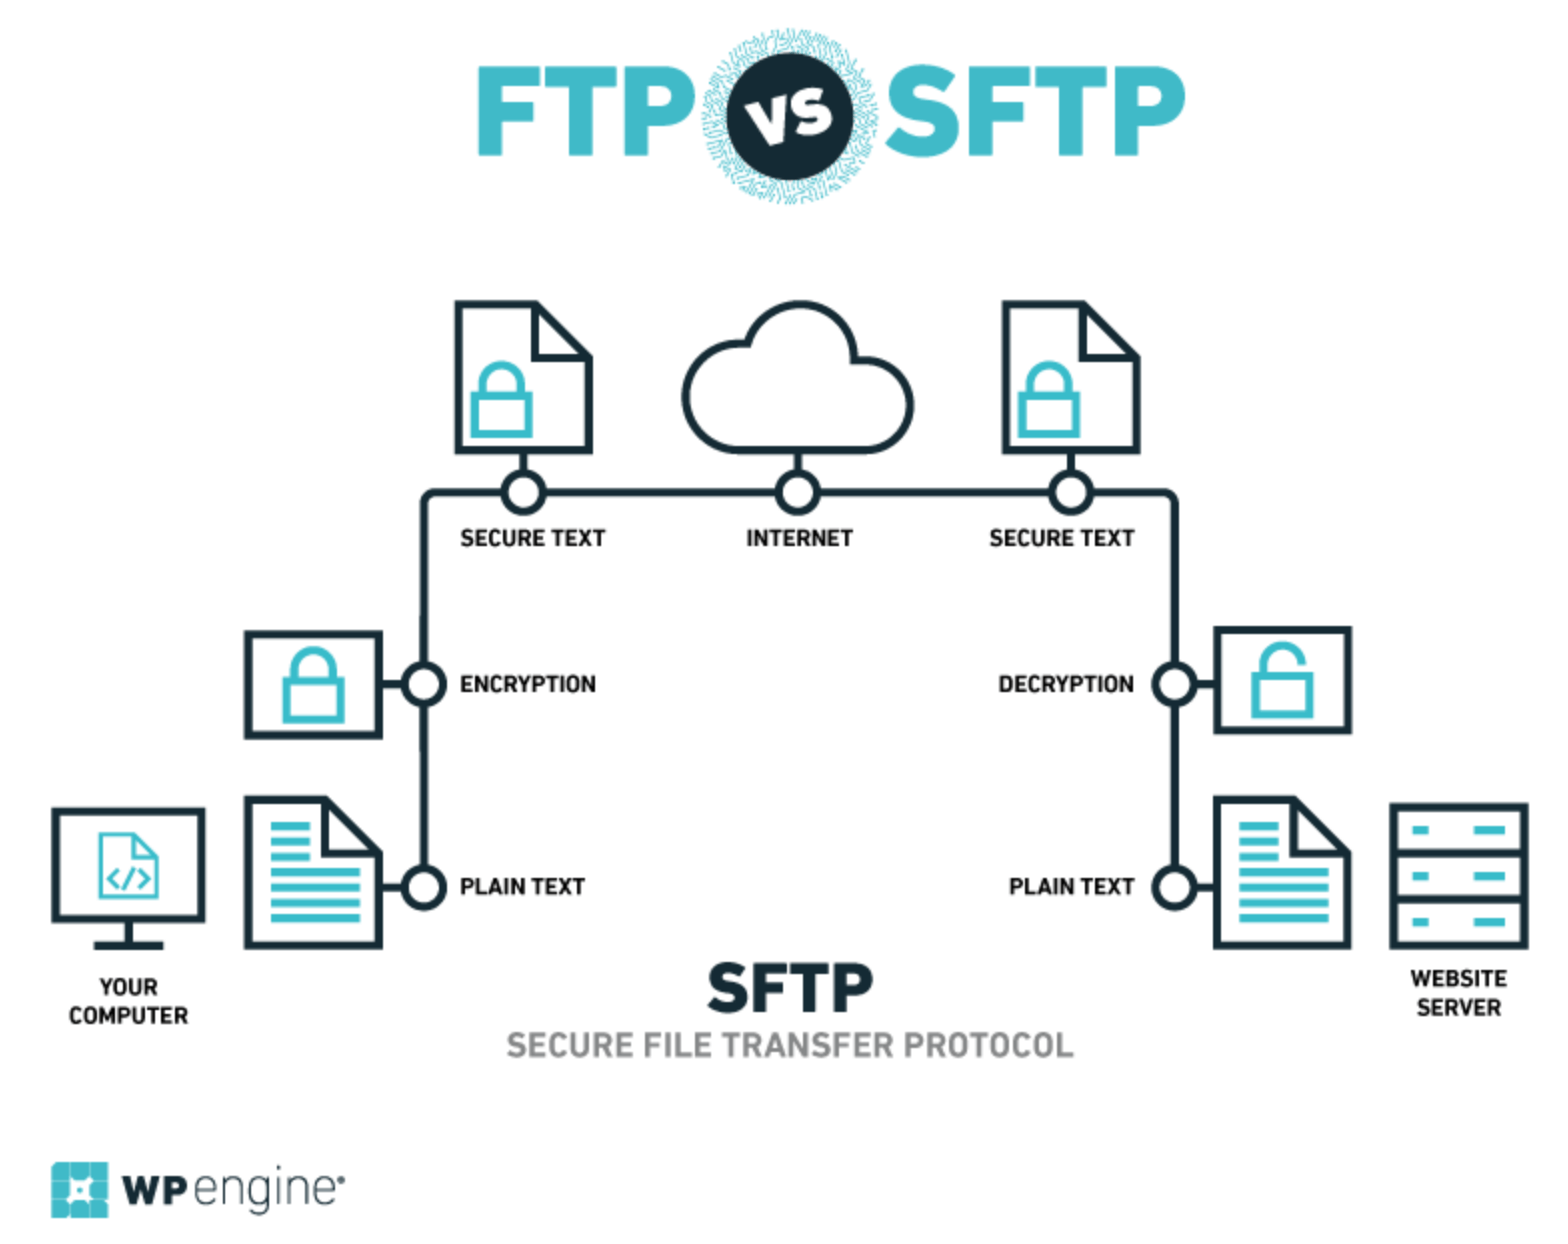 WP Engine's SFTP diagram.